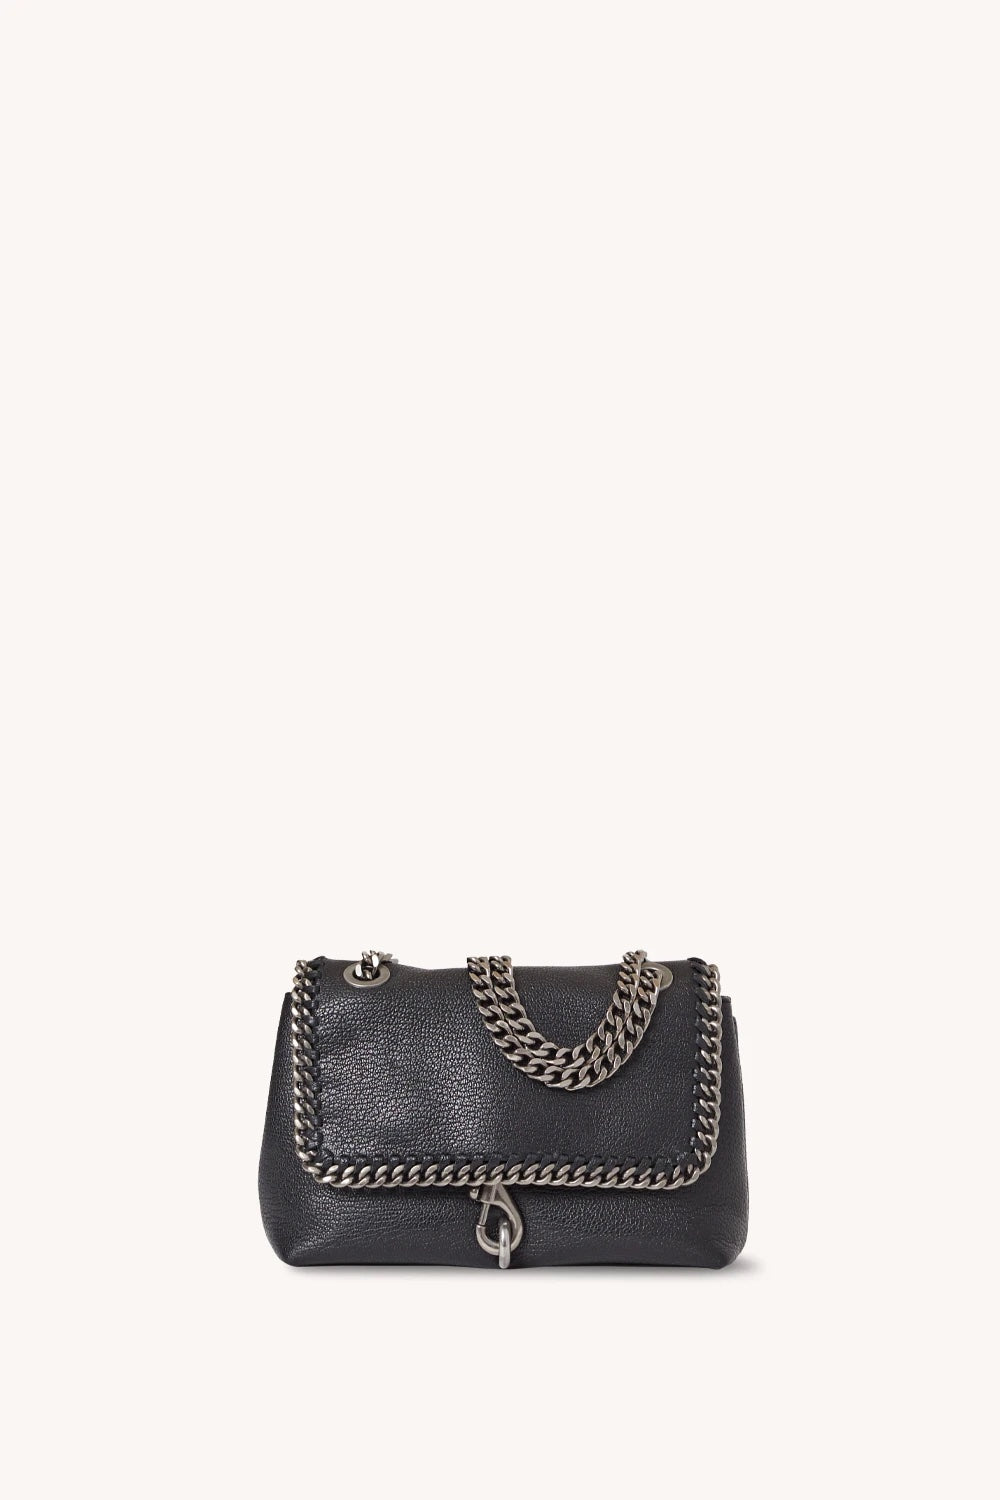 EDIE CROSSBODY WITH WOVEN CHAIN